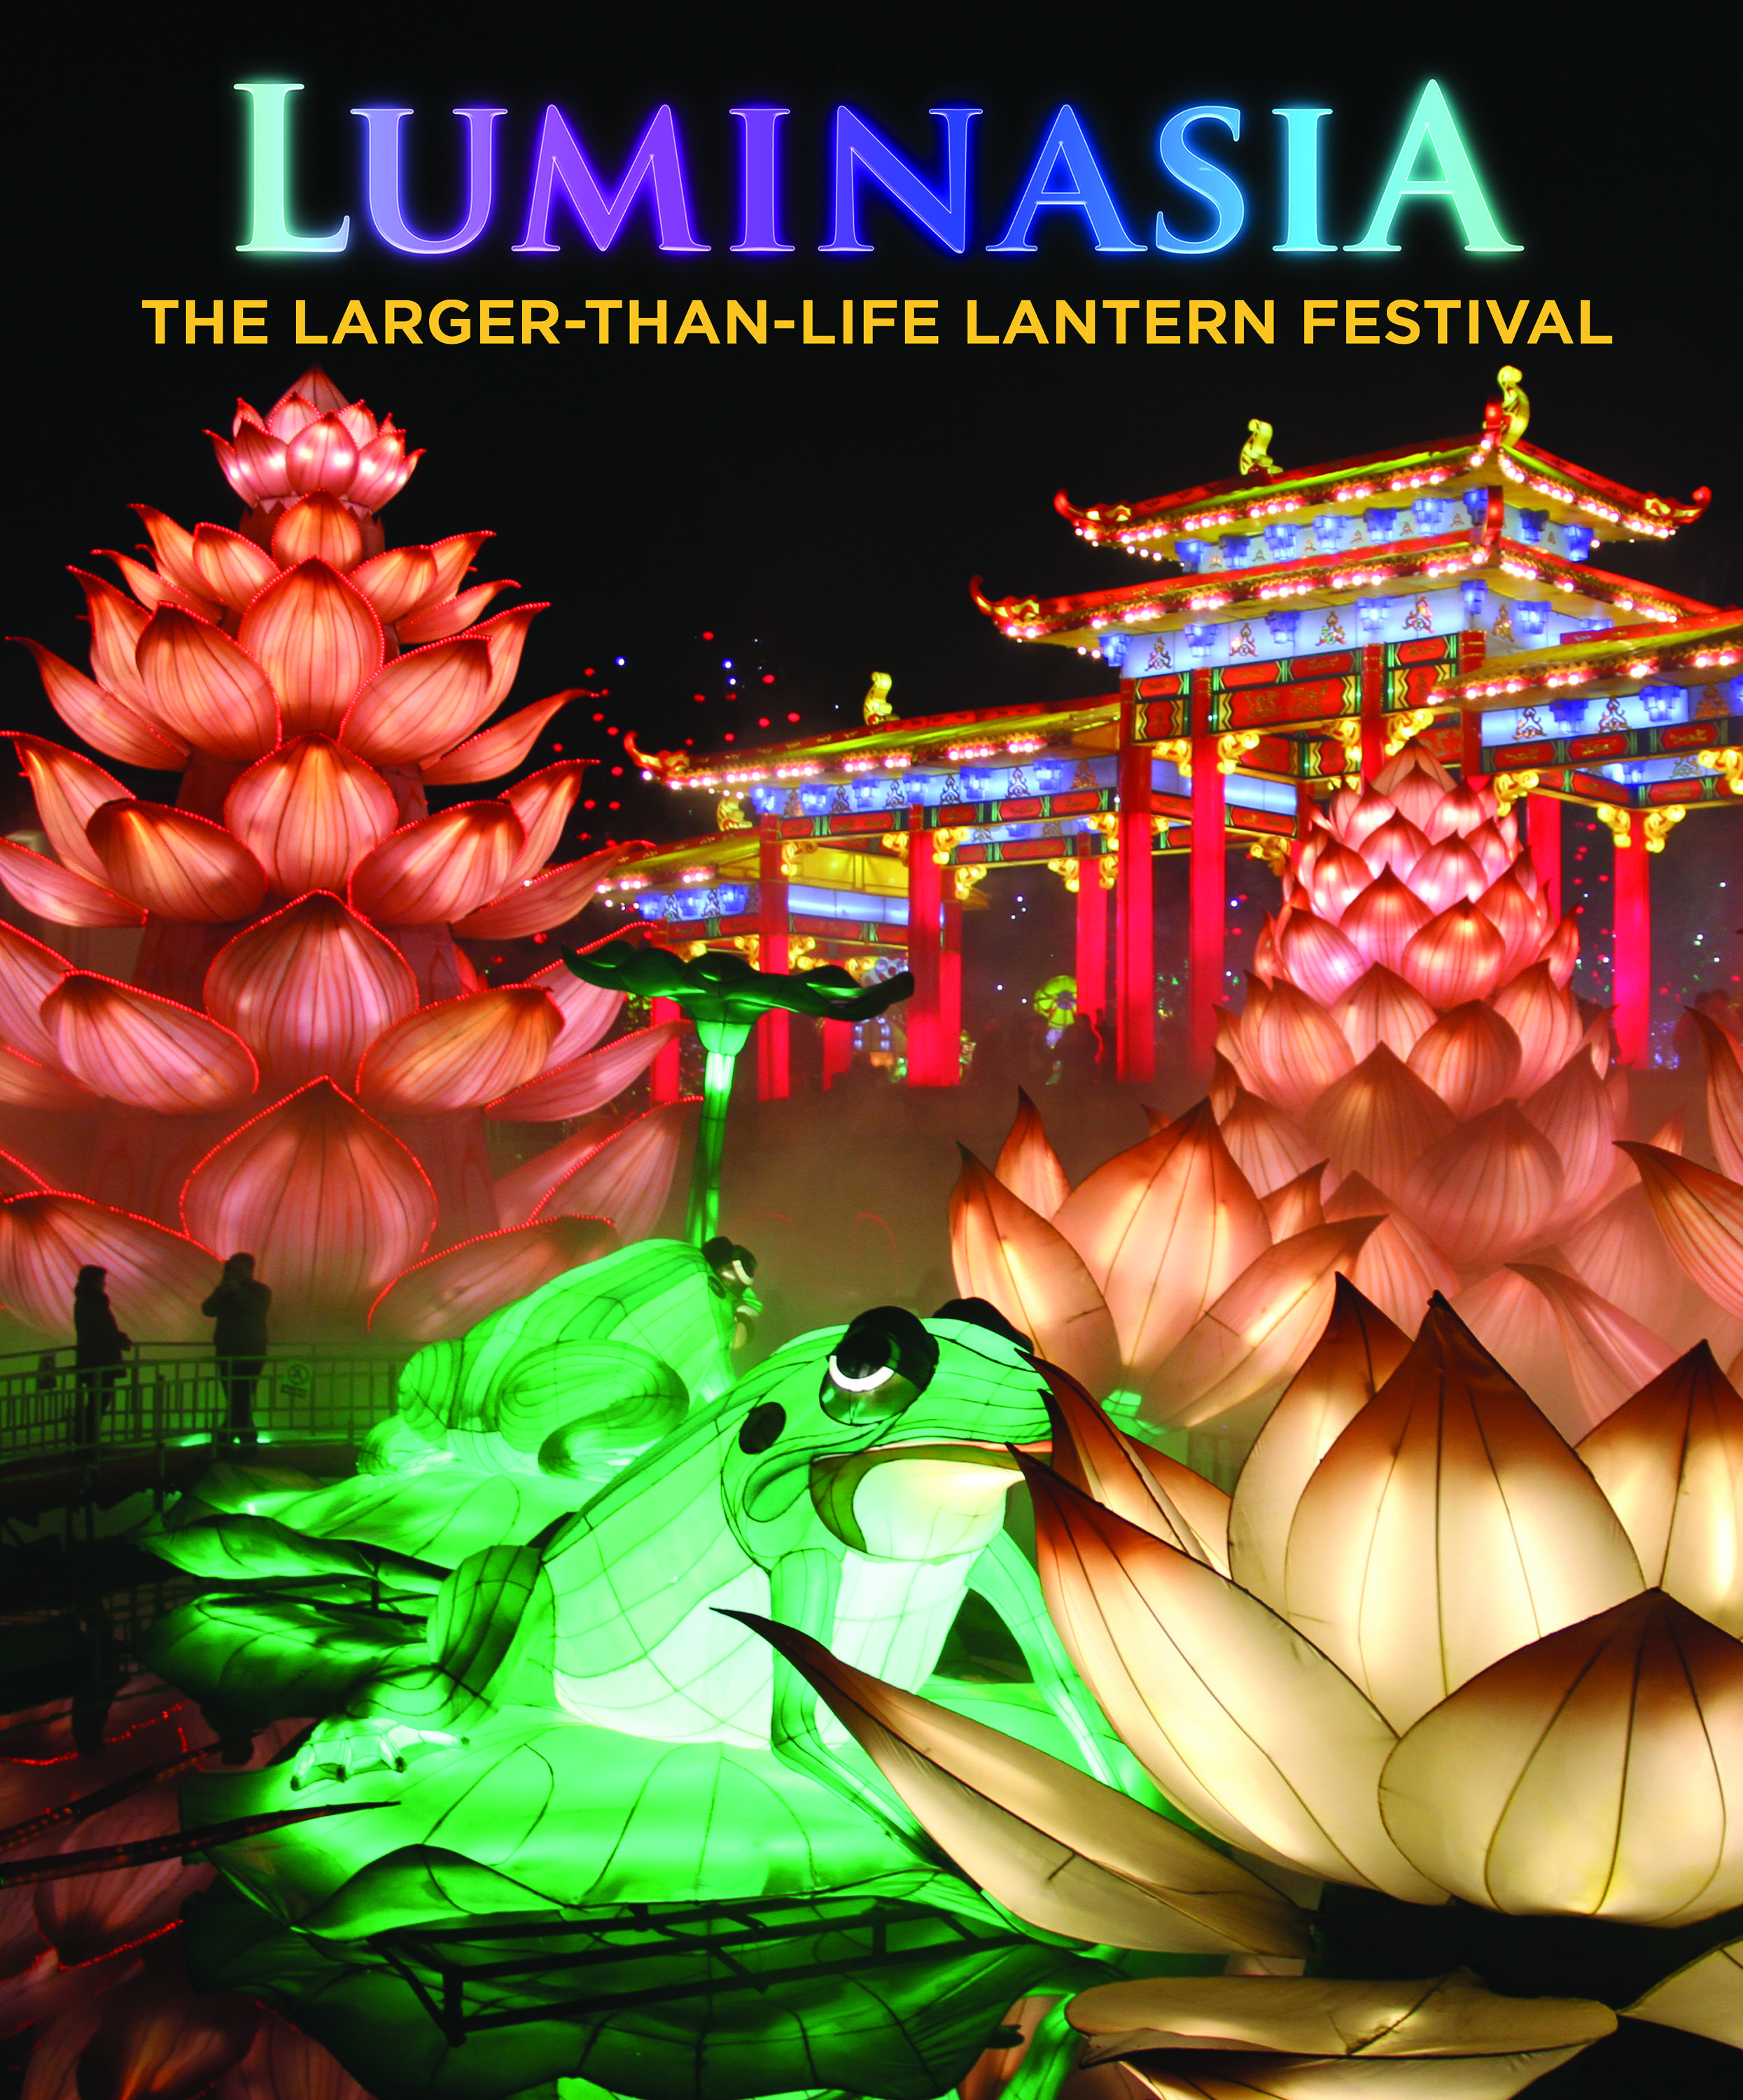 Luminasia Is Coming To Lacf Images Are Representative Of